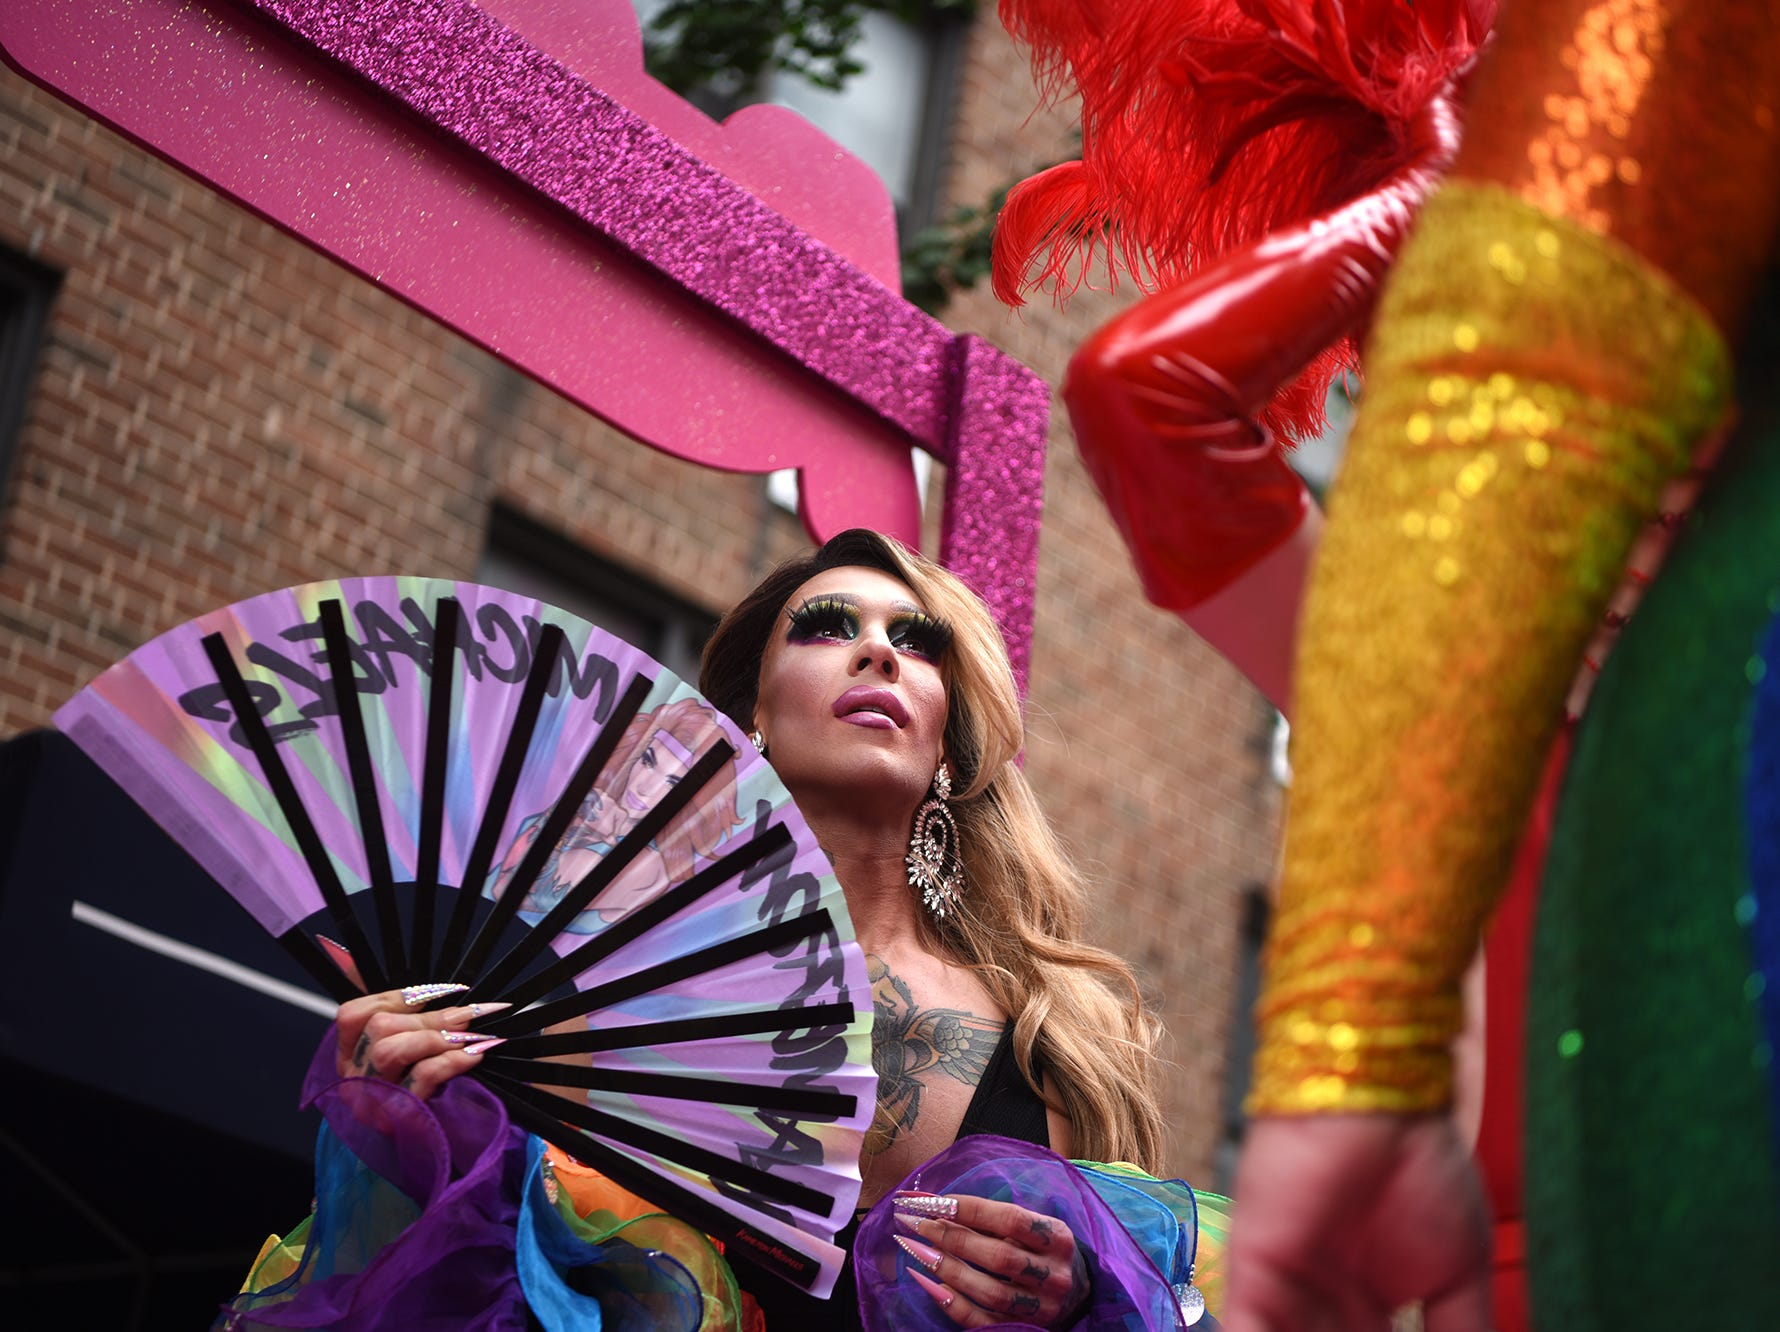 The 49th annual Pride Parade in New York City commemorates the Stonewall Riots that erupted in response to a police raid of the gay bar the Stonewall Inn on Christopher St. The parade marks the end of Pride month. Sunday, June 24, 2018